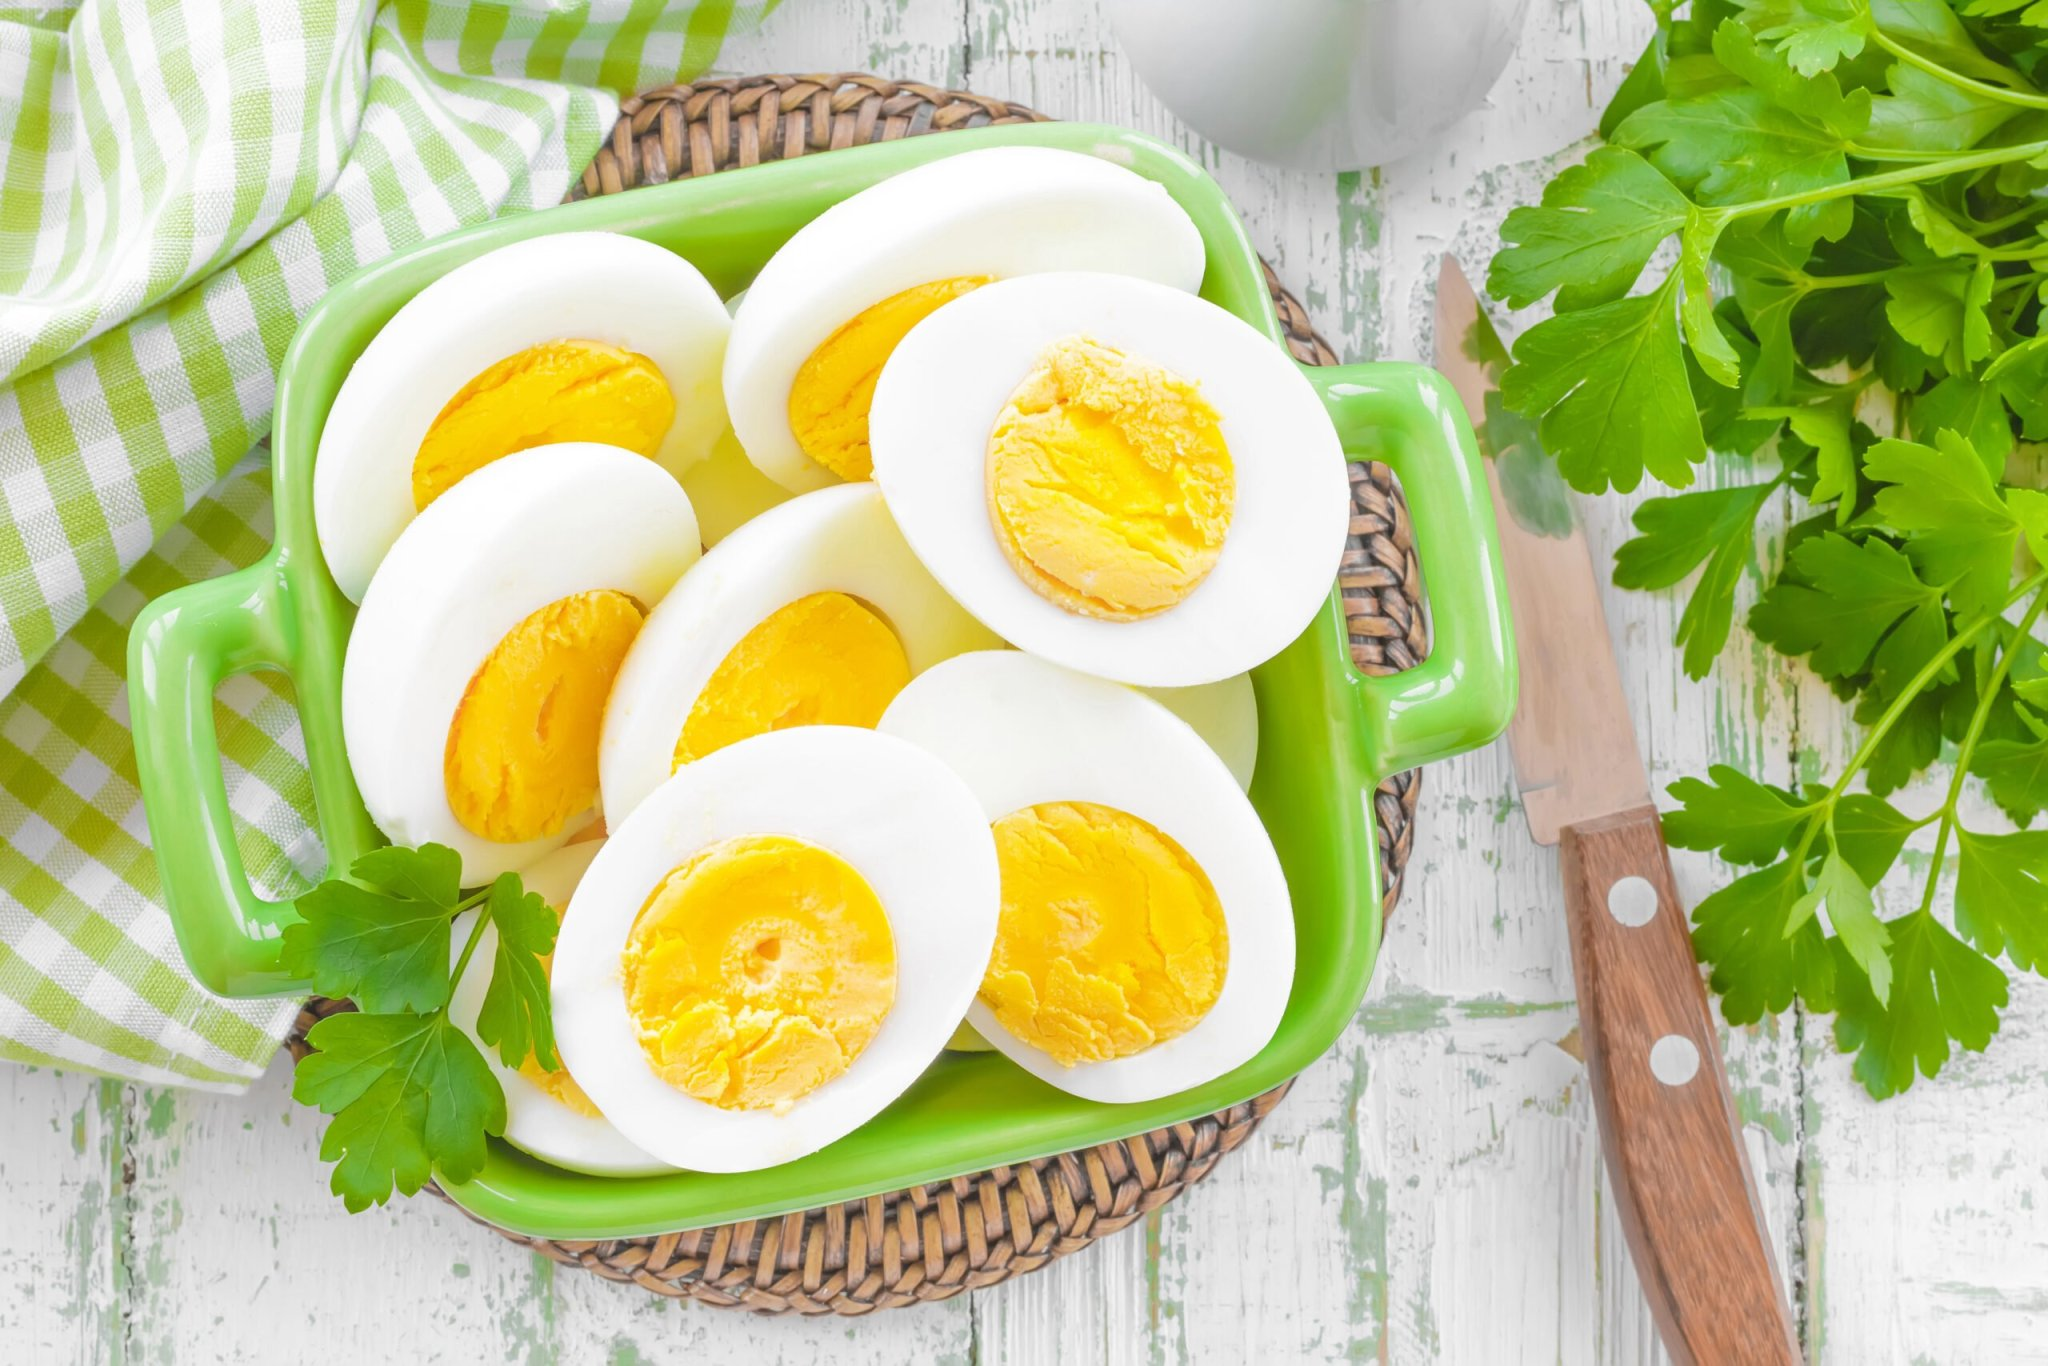 It Turns Out You Can Make Hard Boiled Eggs Without Boiling Them – Here's How